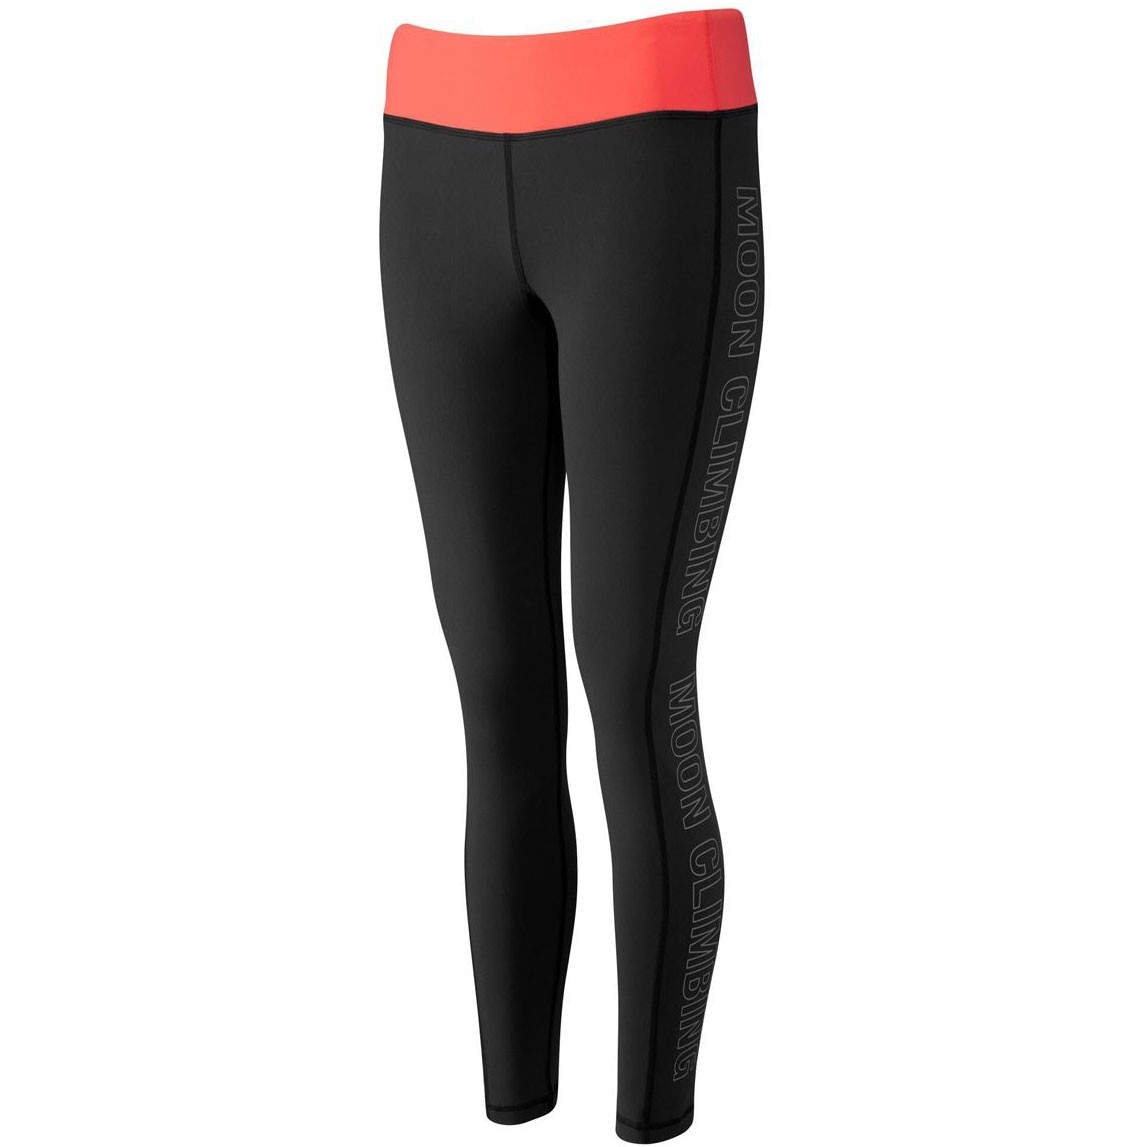 Moon Sigma Leggings - Women's - Black Outline